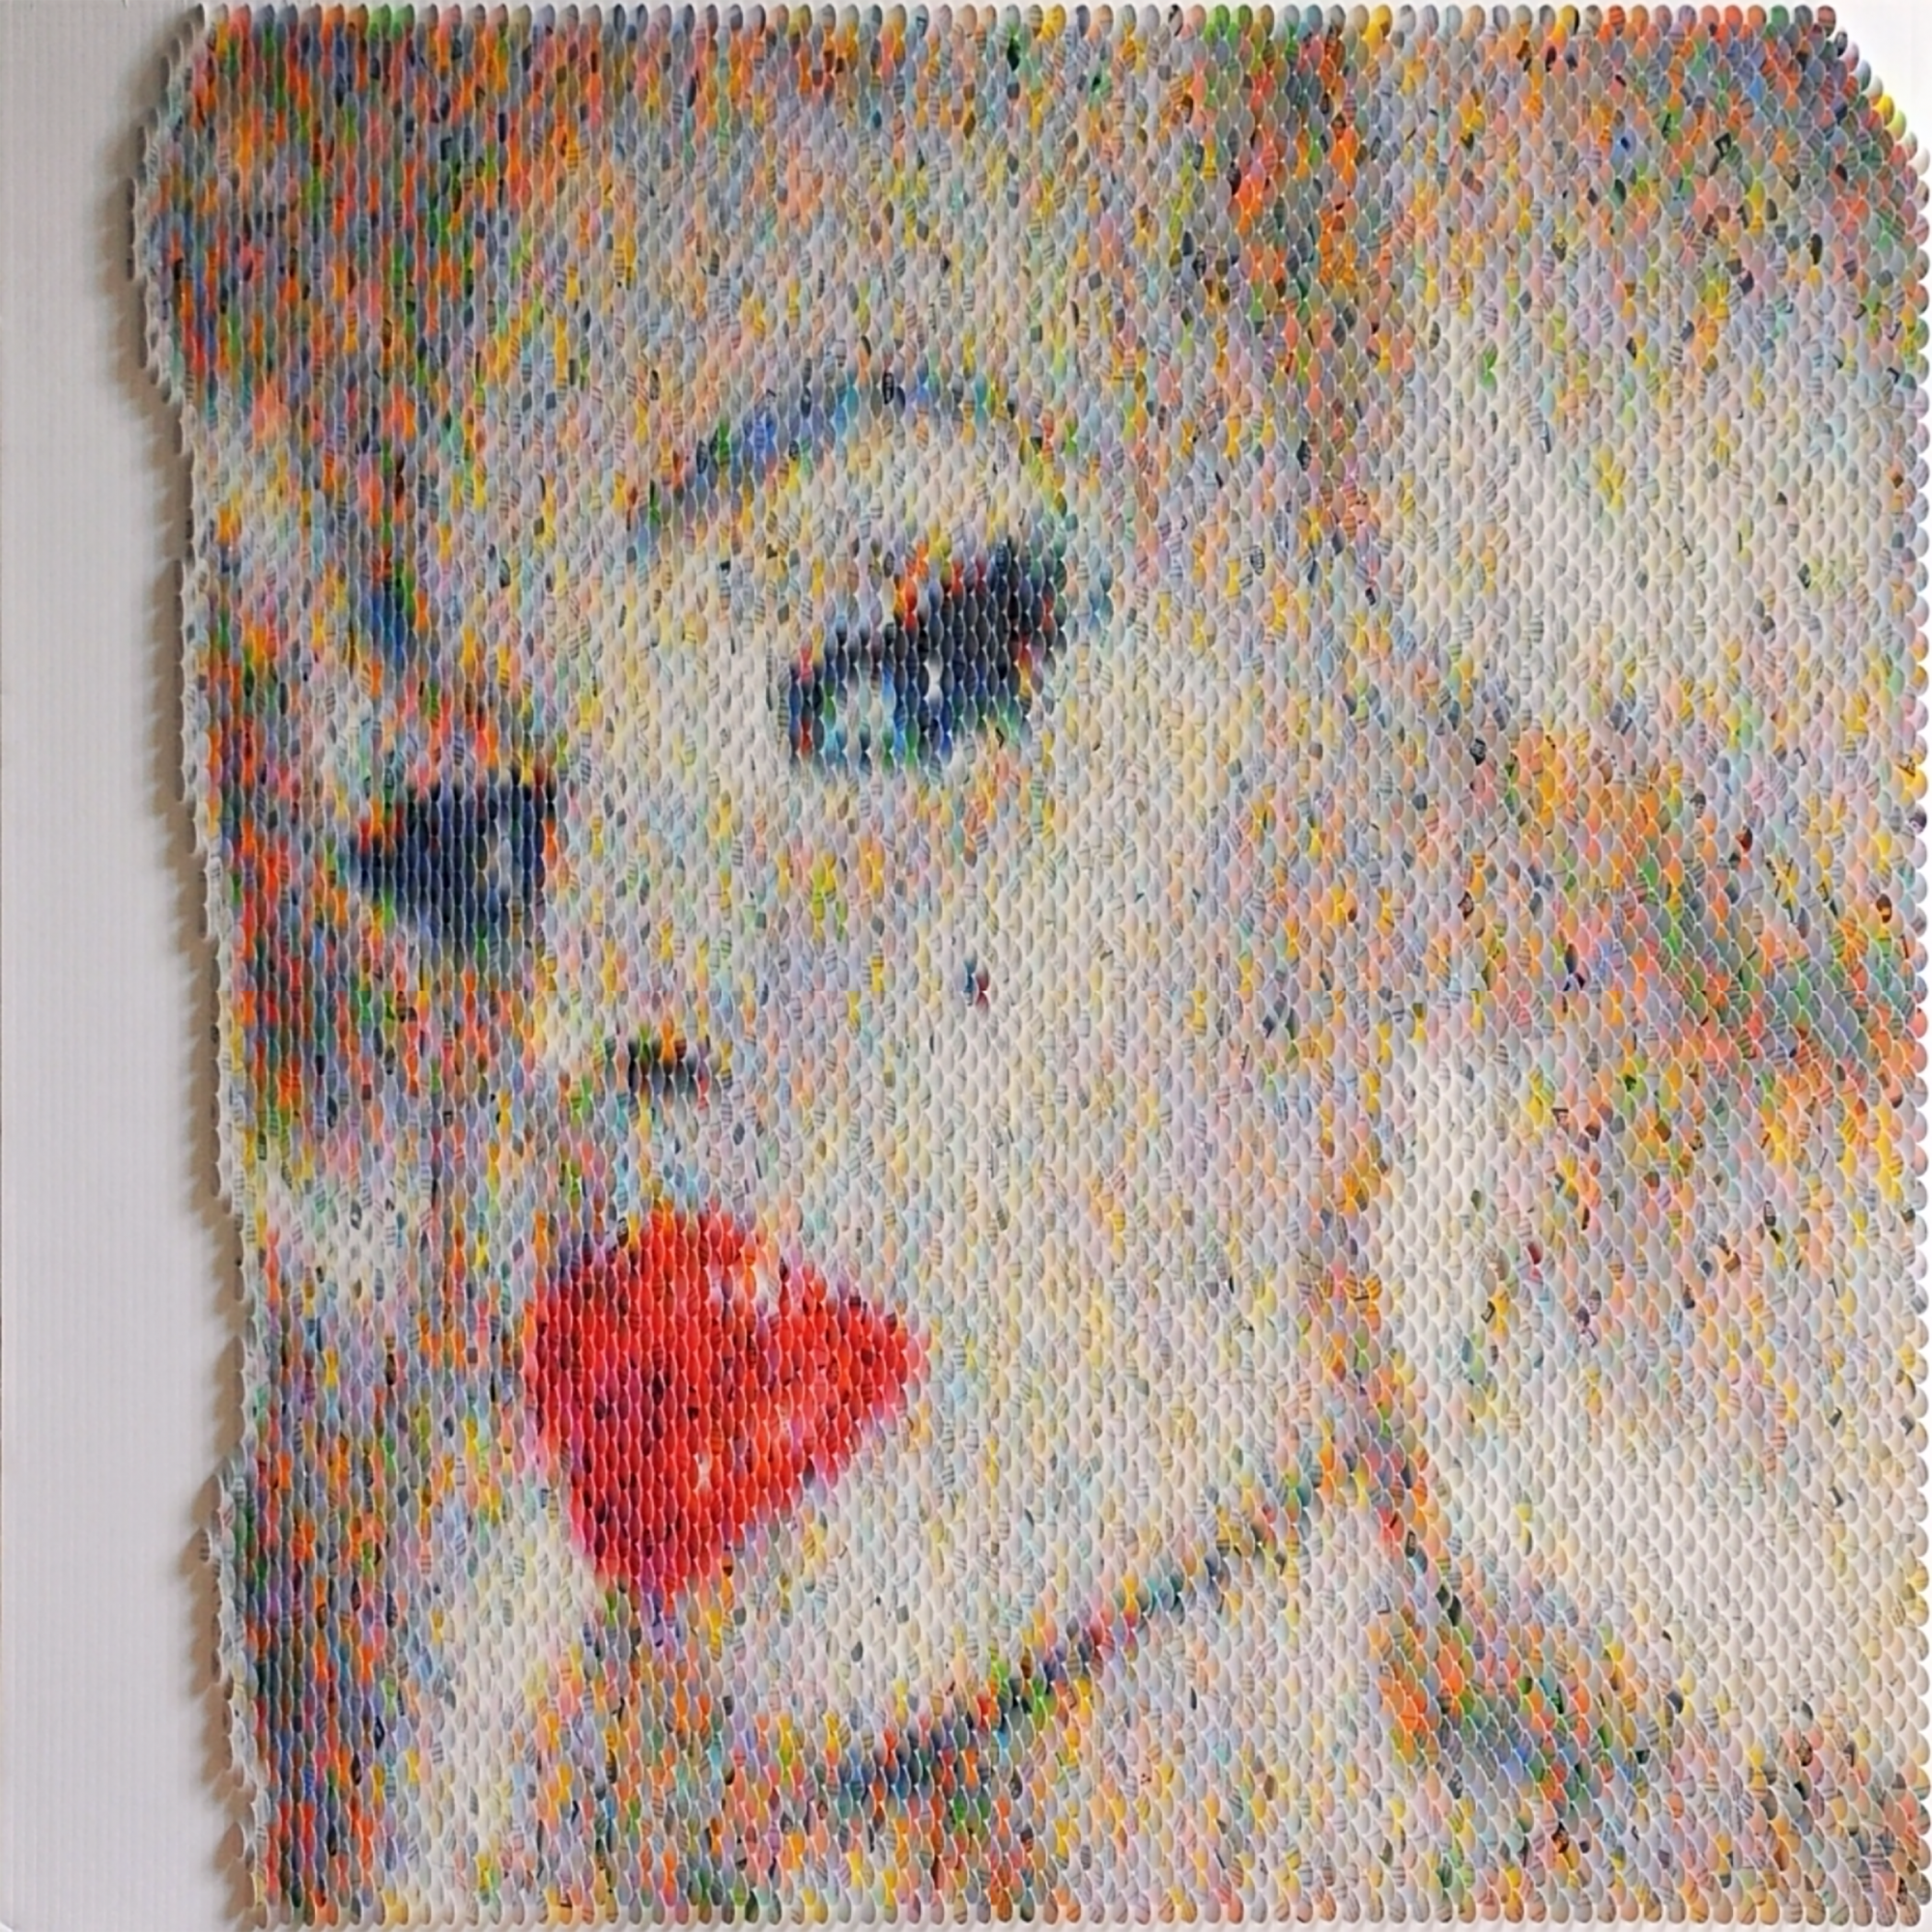 New Portraits Made From Hundreds of Punched Paint Chips - Amanda Lepore